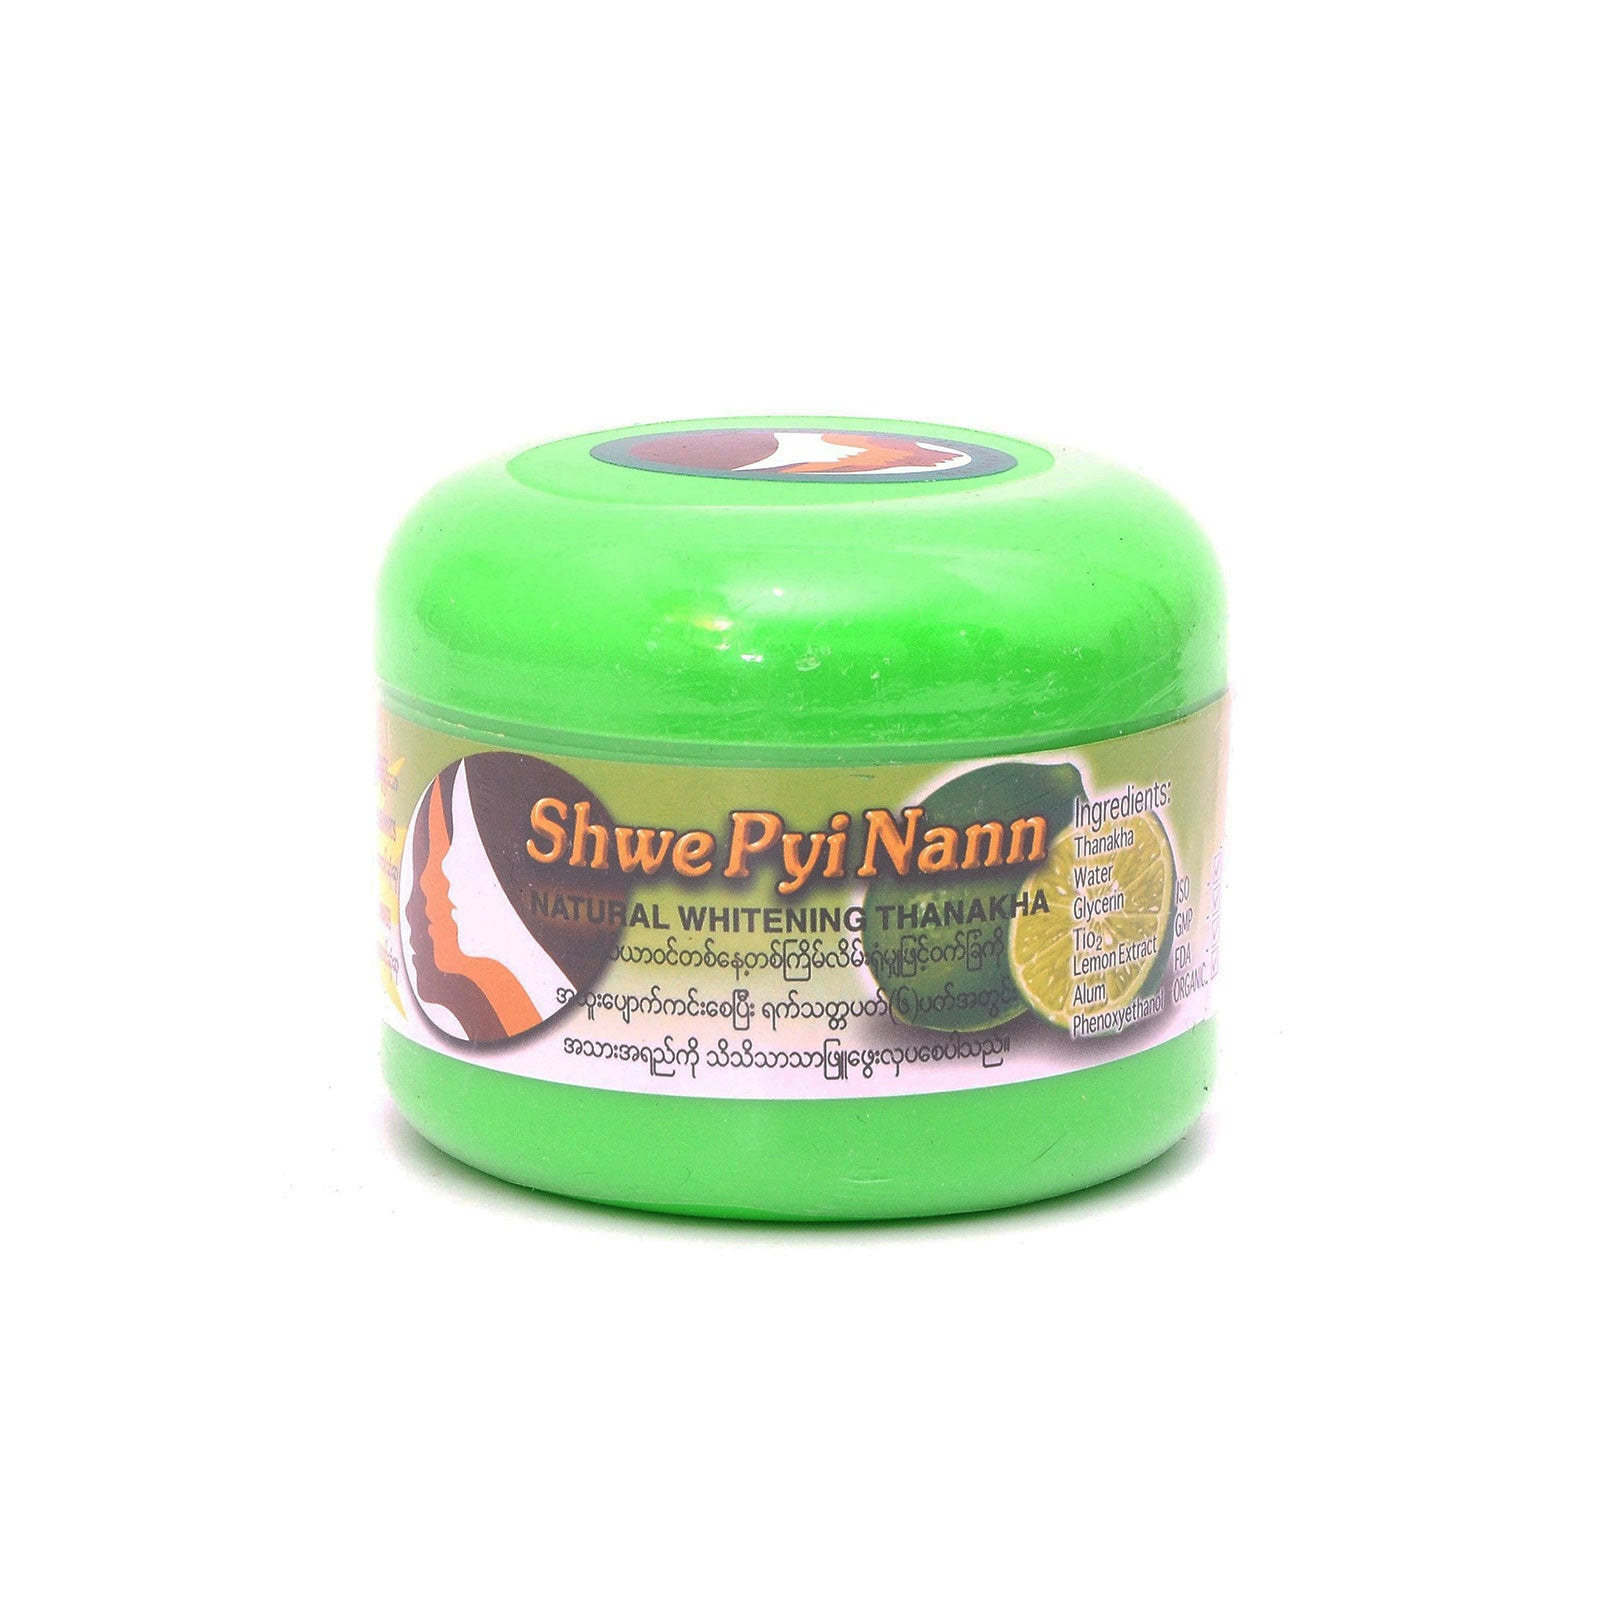 Burmese Pure Natural Thanakha - Myanmar Traditional Cosmetic Obtained from Thanakha tree